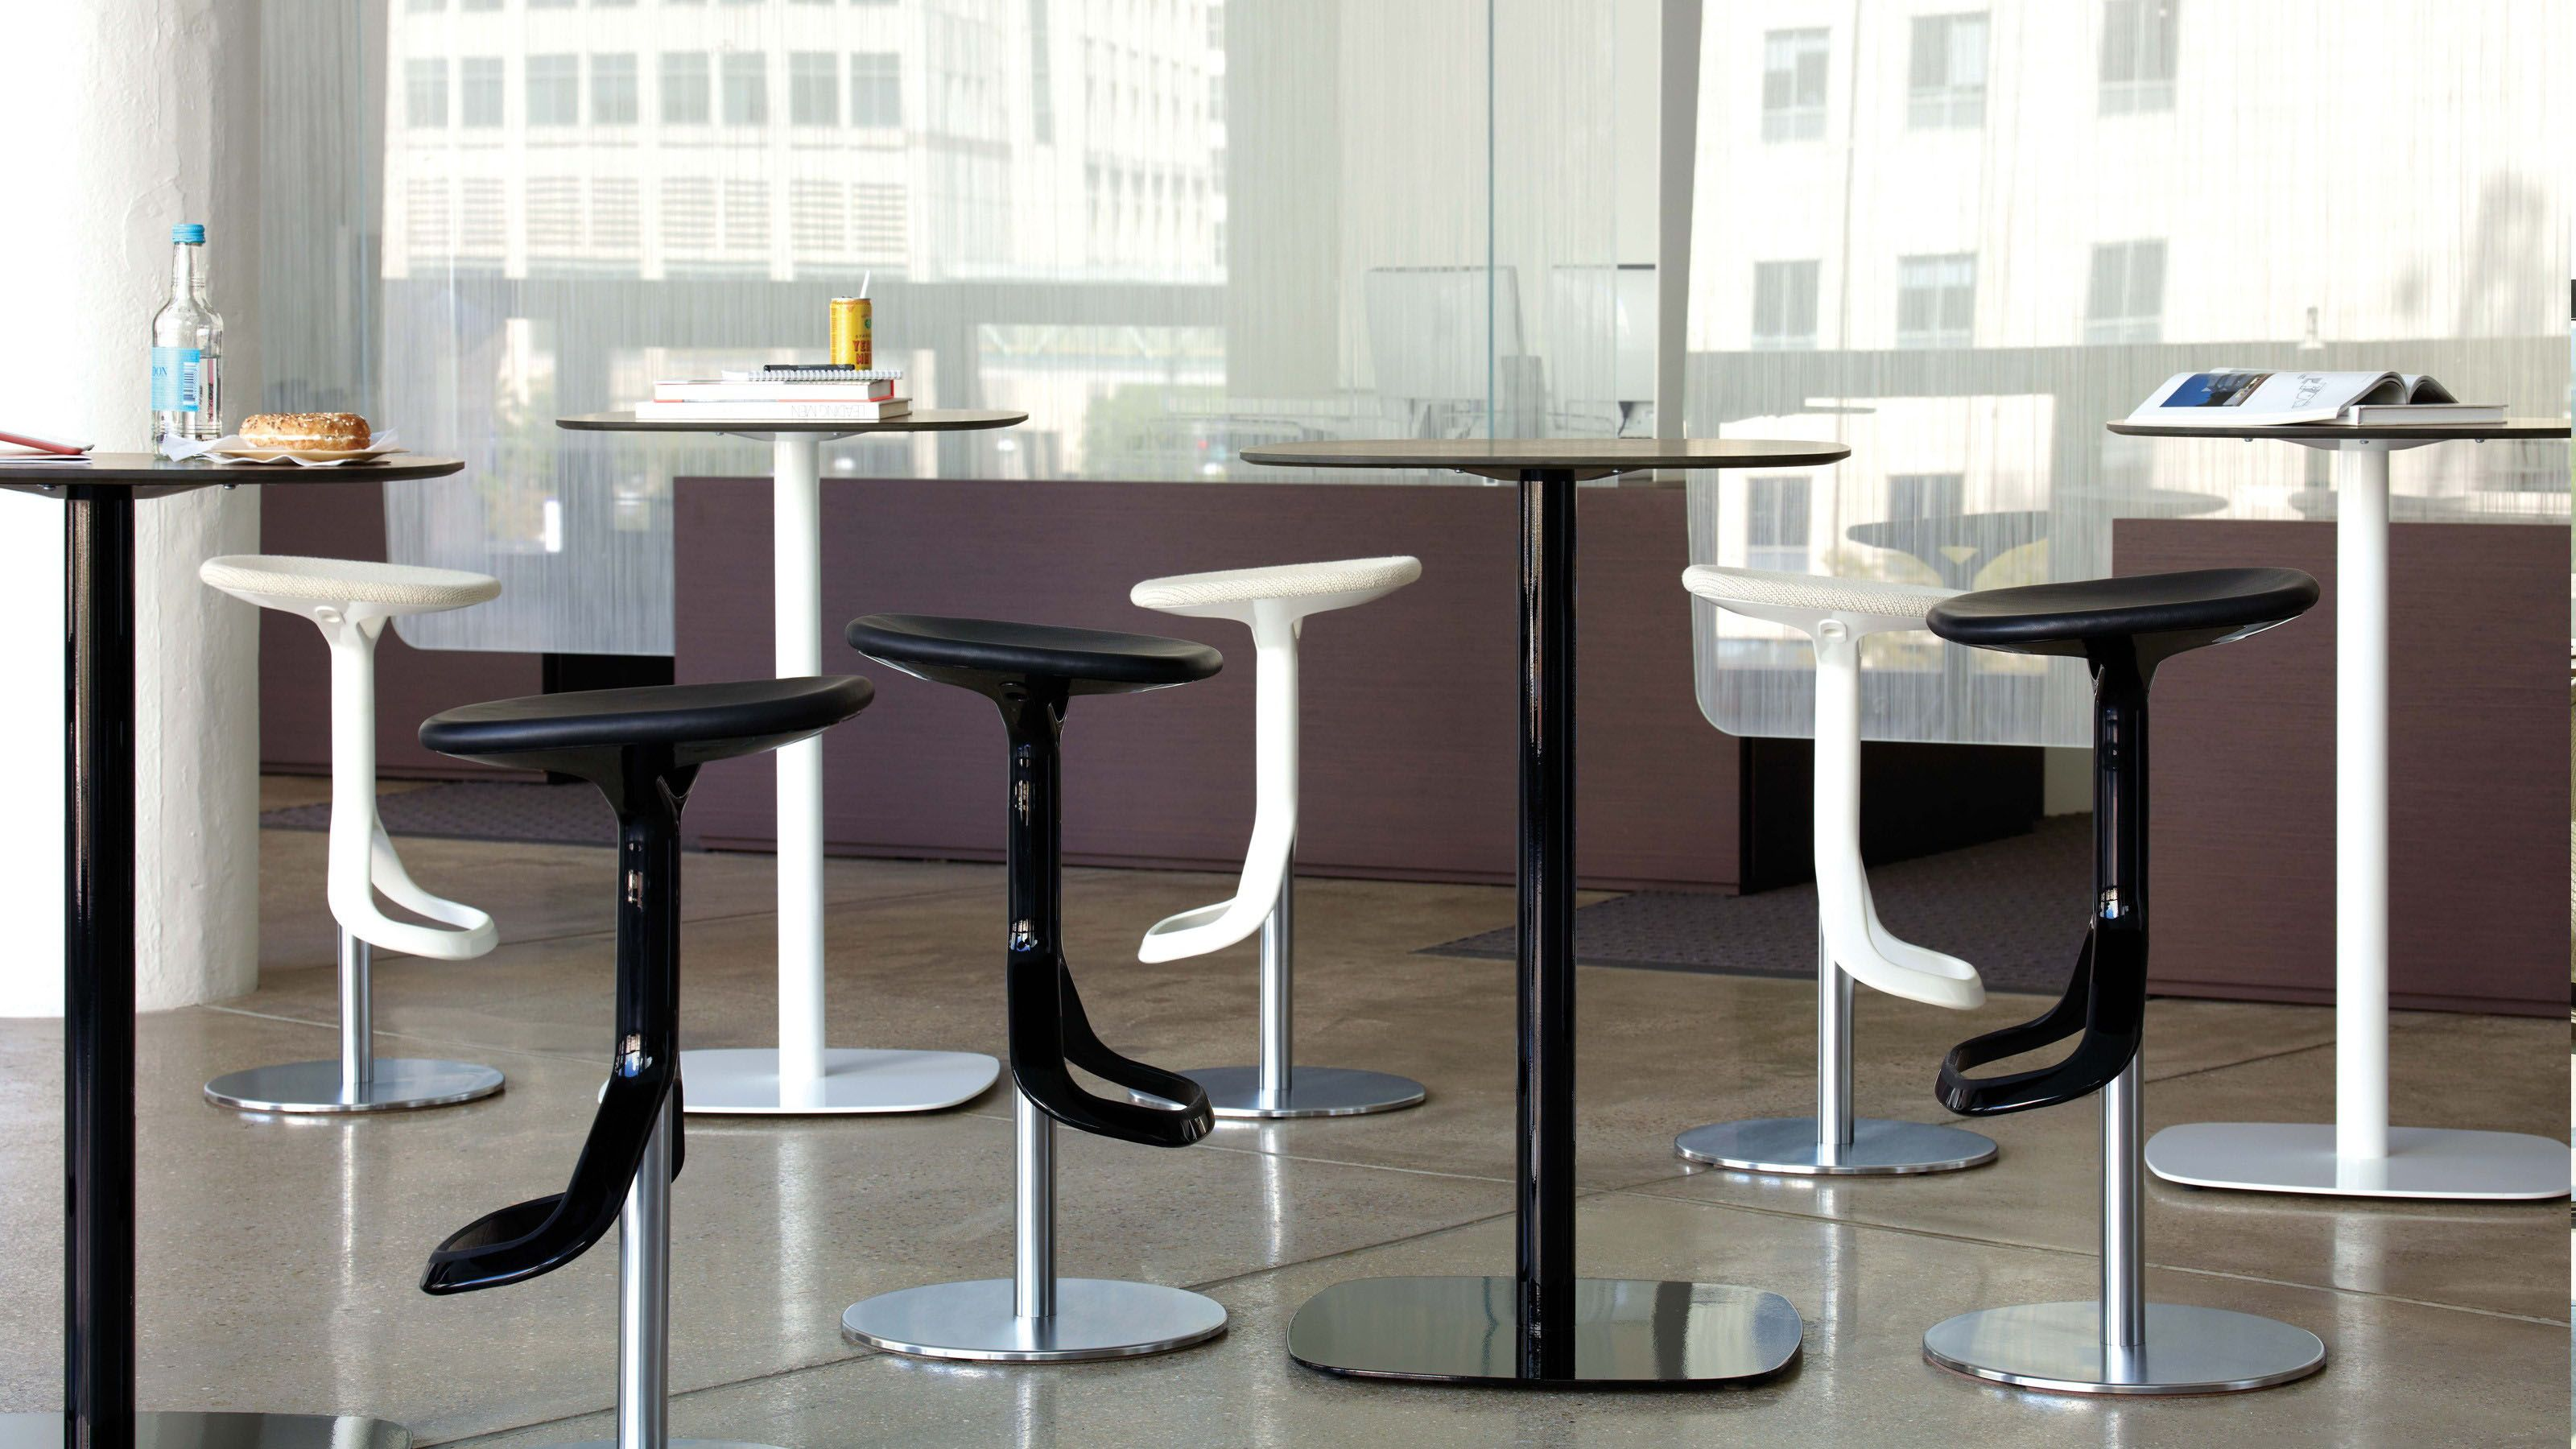 Lox Stool & Chair from Coalesse Furniture, Stool, Lounge